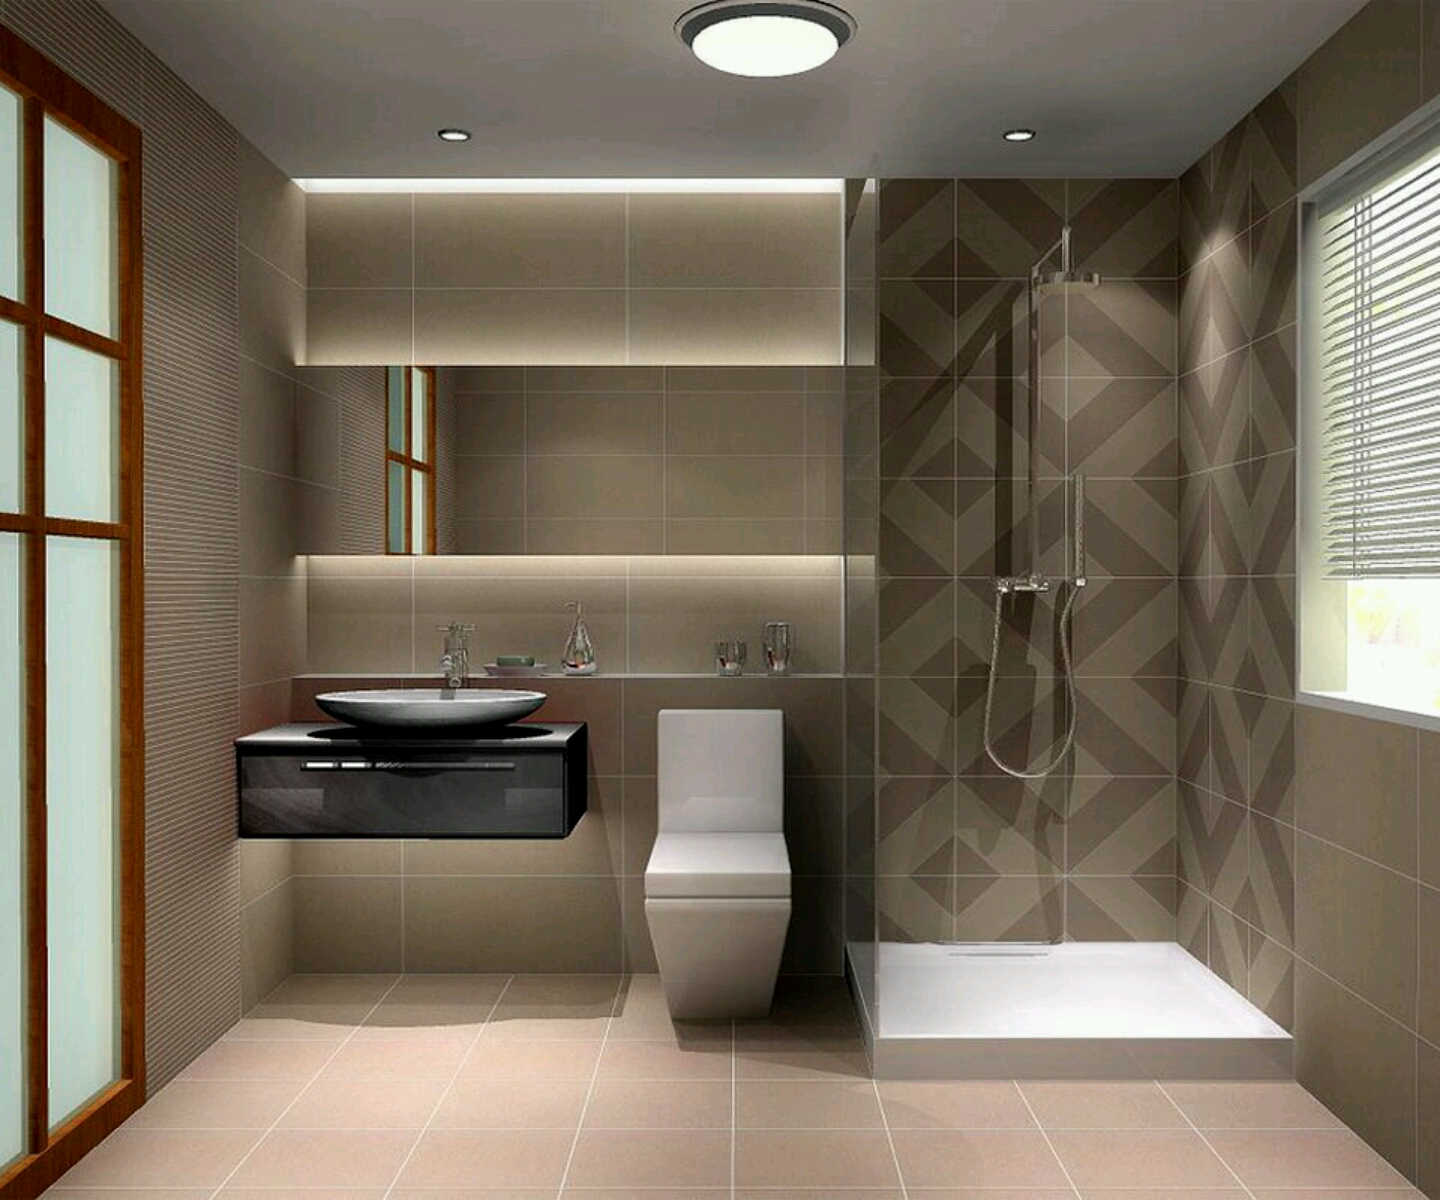 Small modern bathroom design 2017 grasscloth wallpaper for Modern small bathroom designs 2013